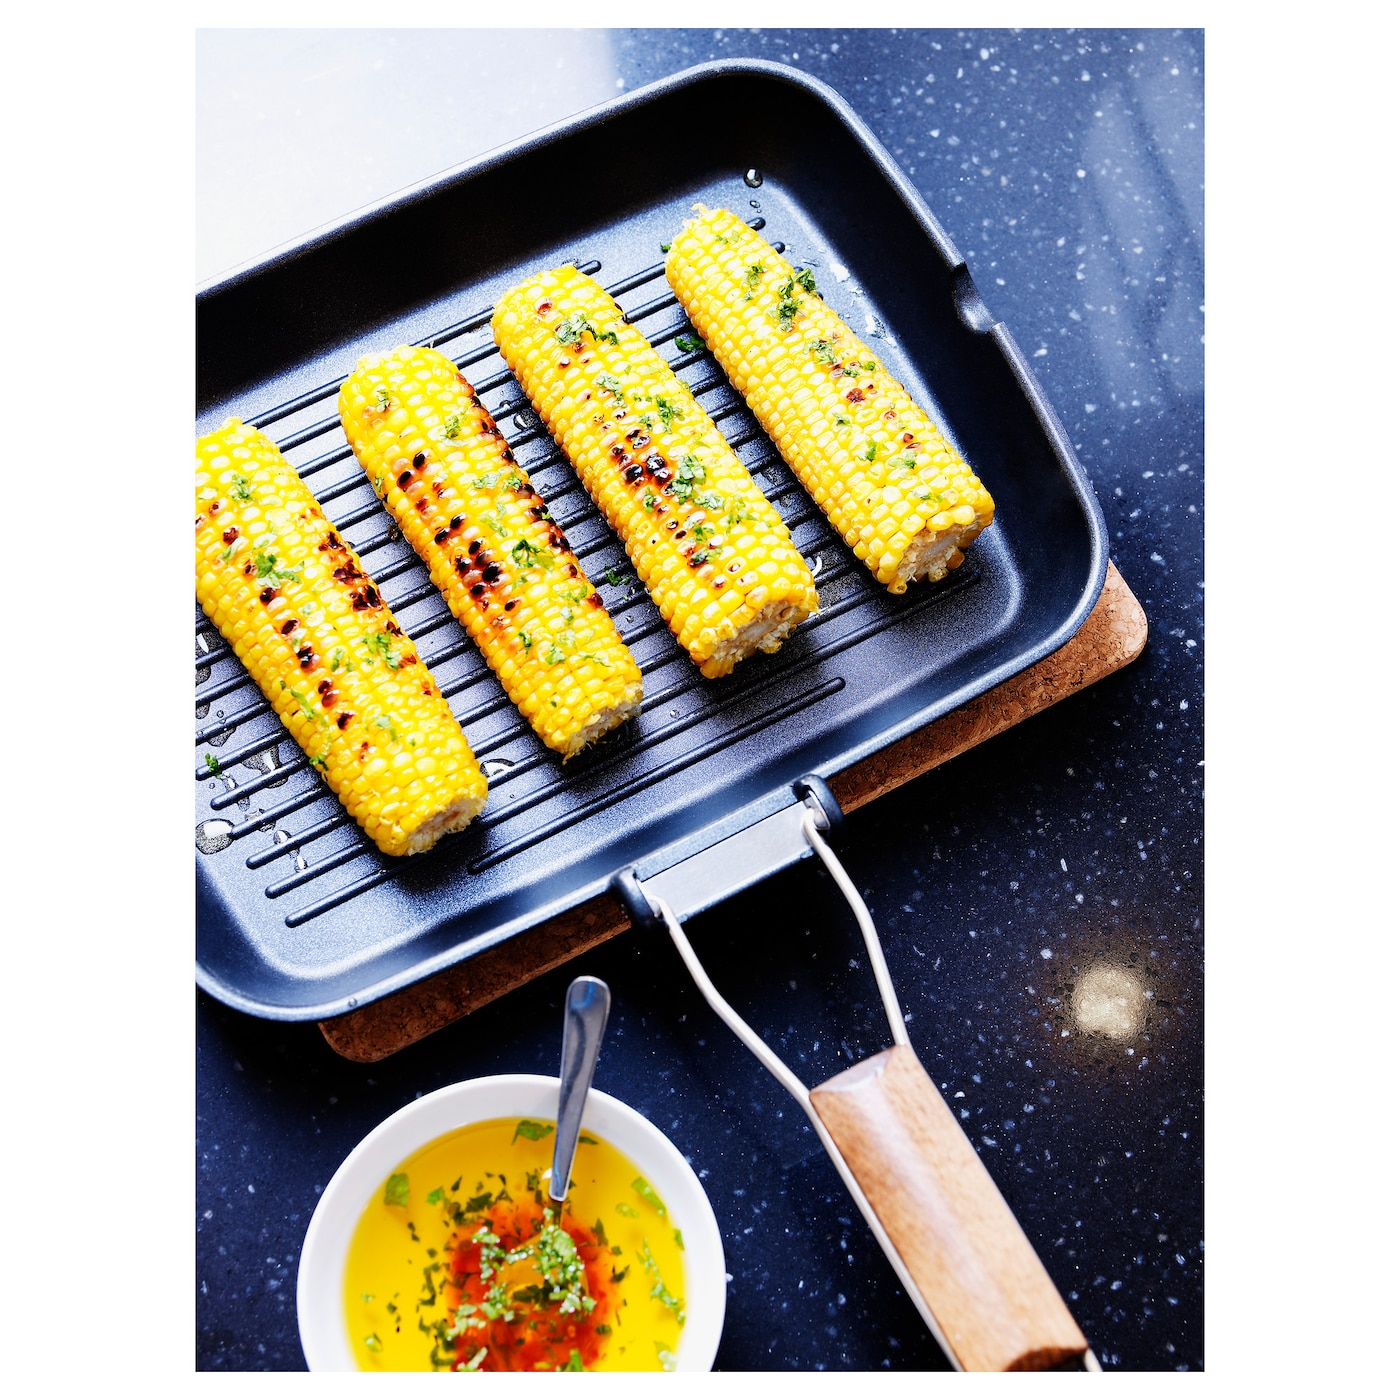 IKEA GRILLA grill pan The handle can be folded down to save space when storing.